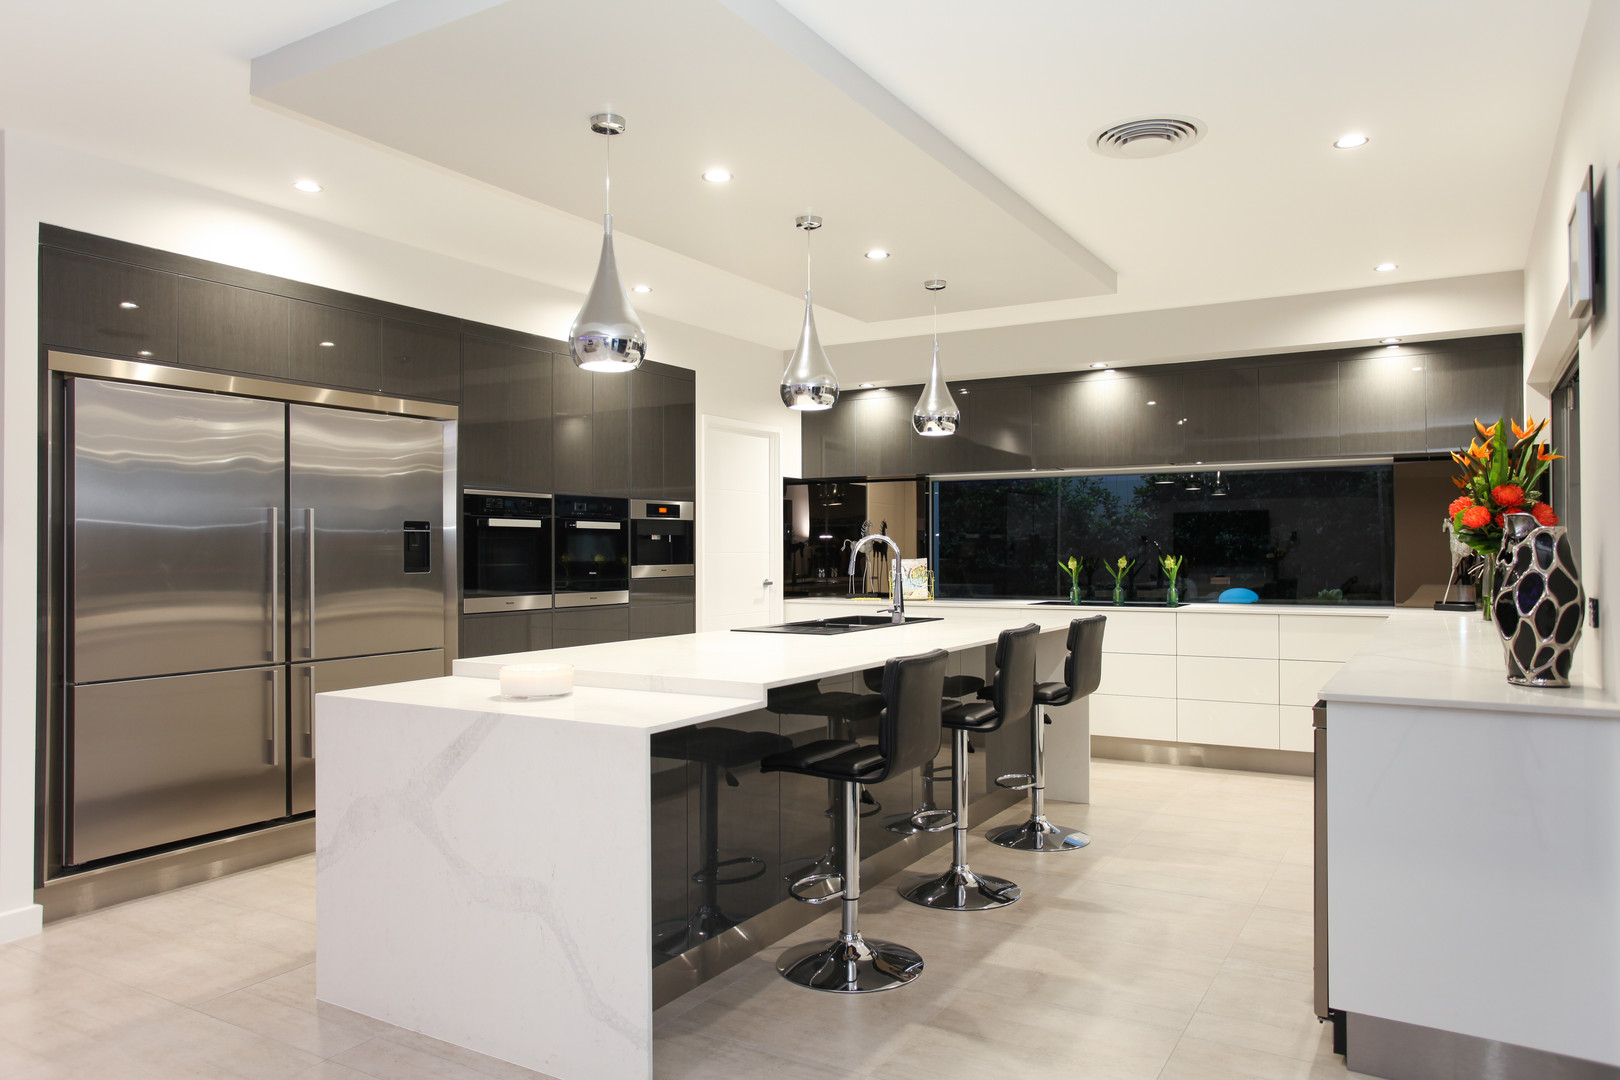 6 - C3 - Kitchen.jpg